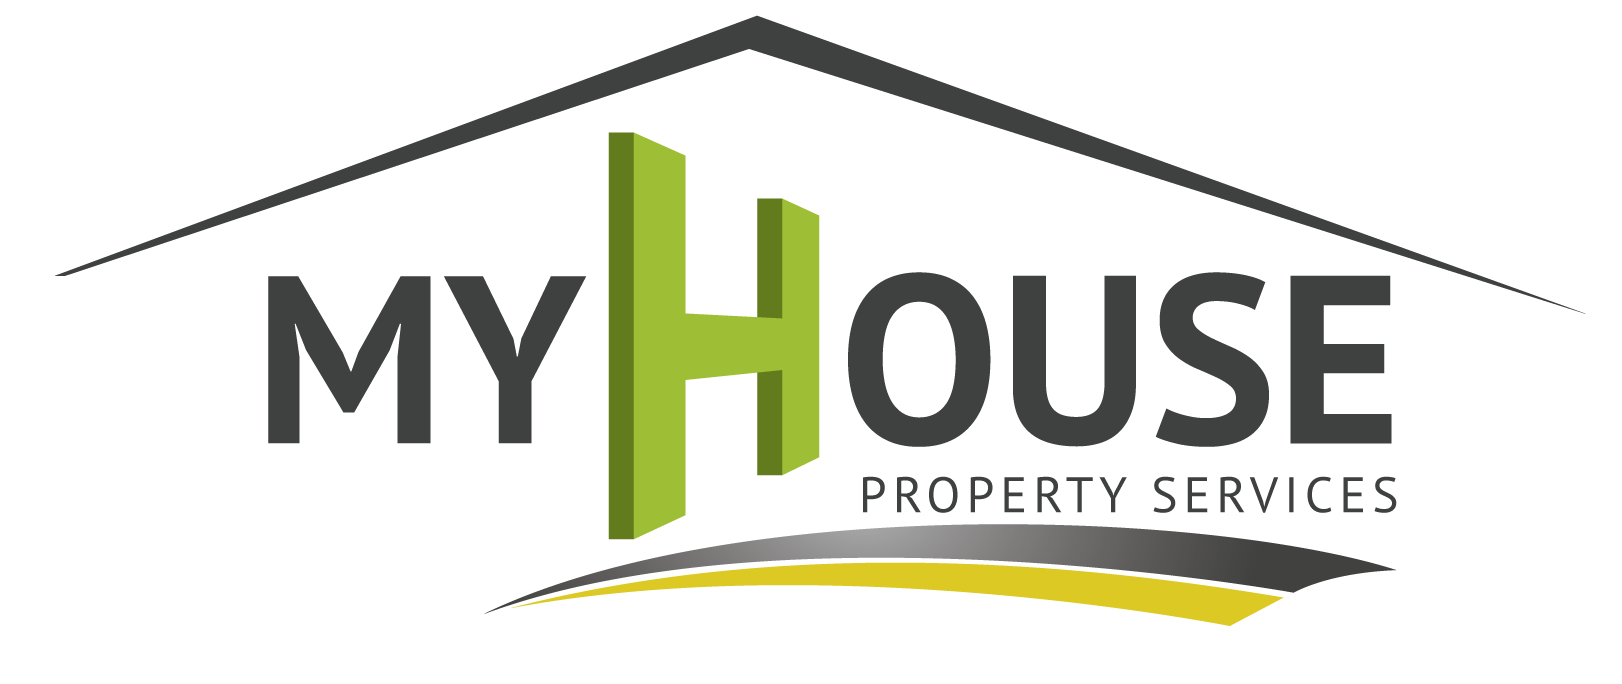 Find a Home To Rent | My House Property Services